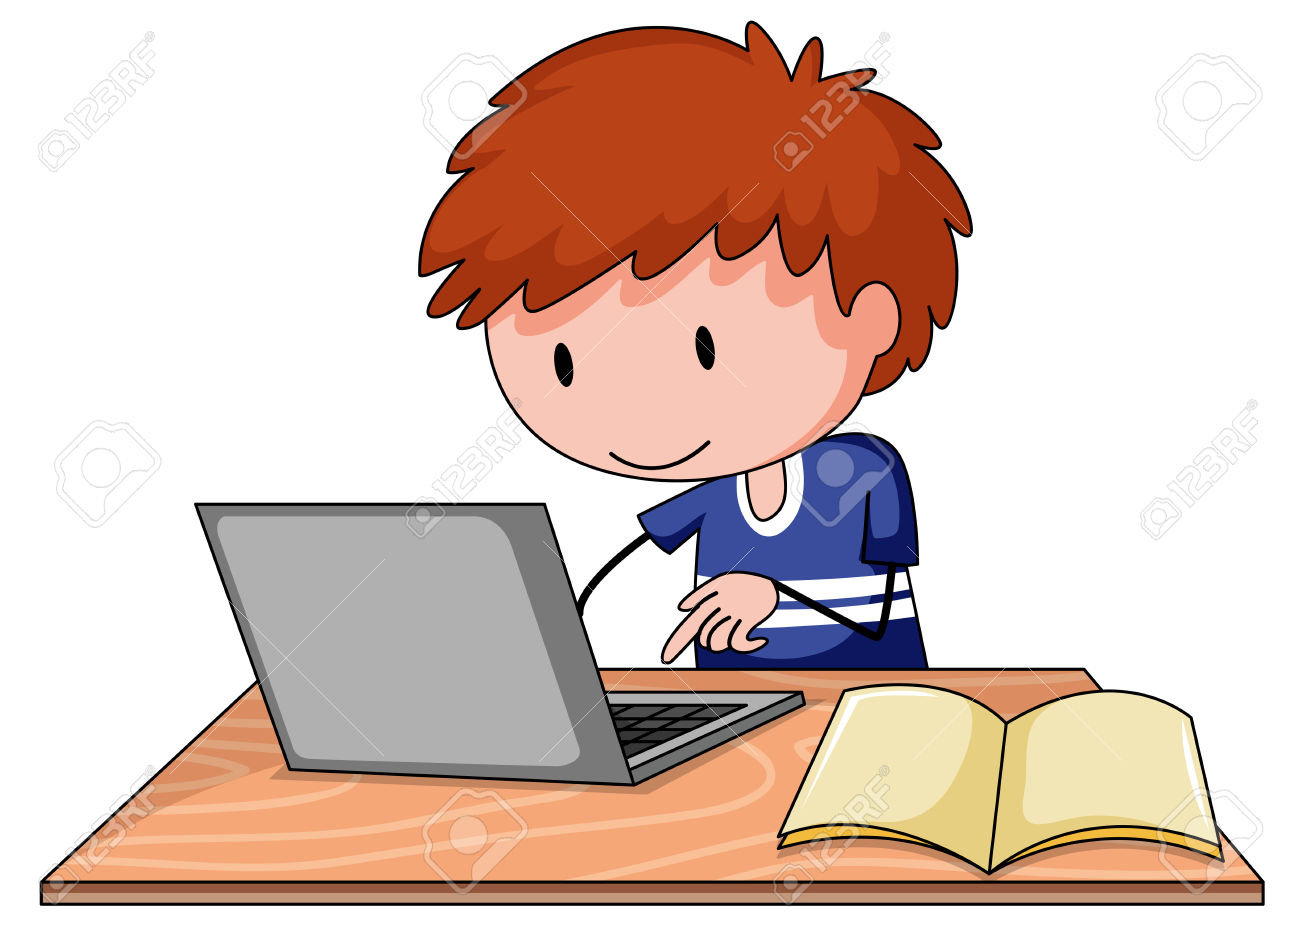 Kid On Computer Clipart